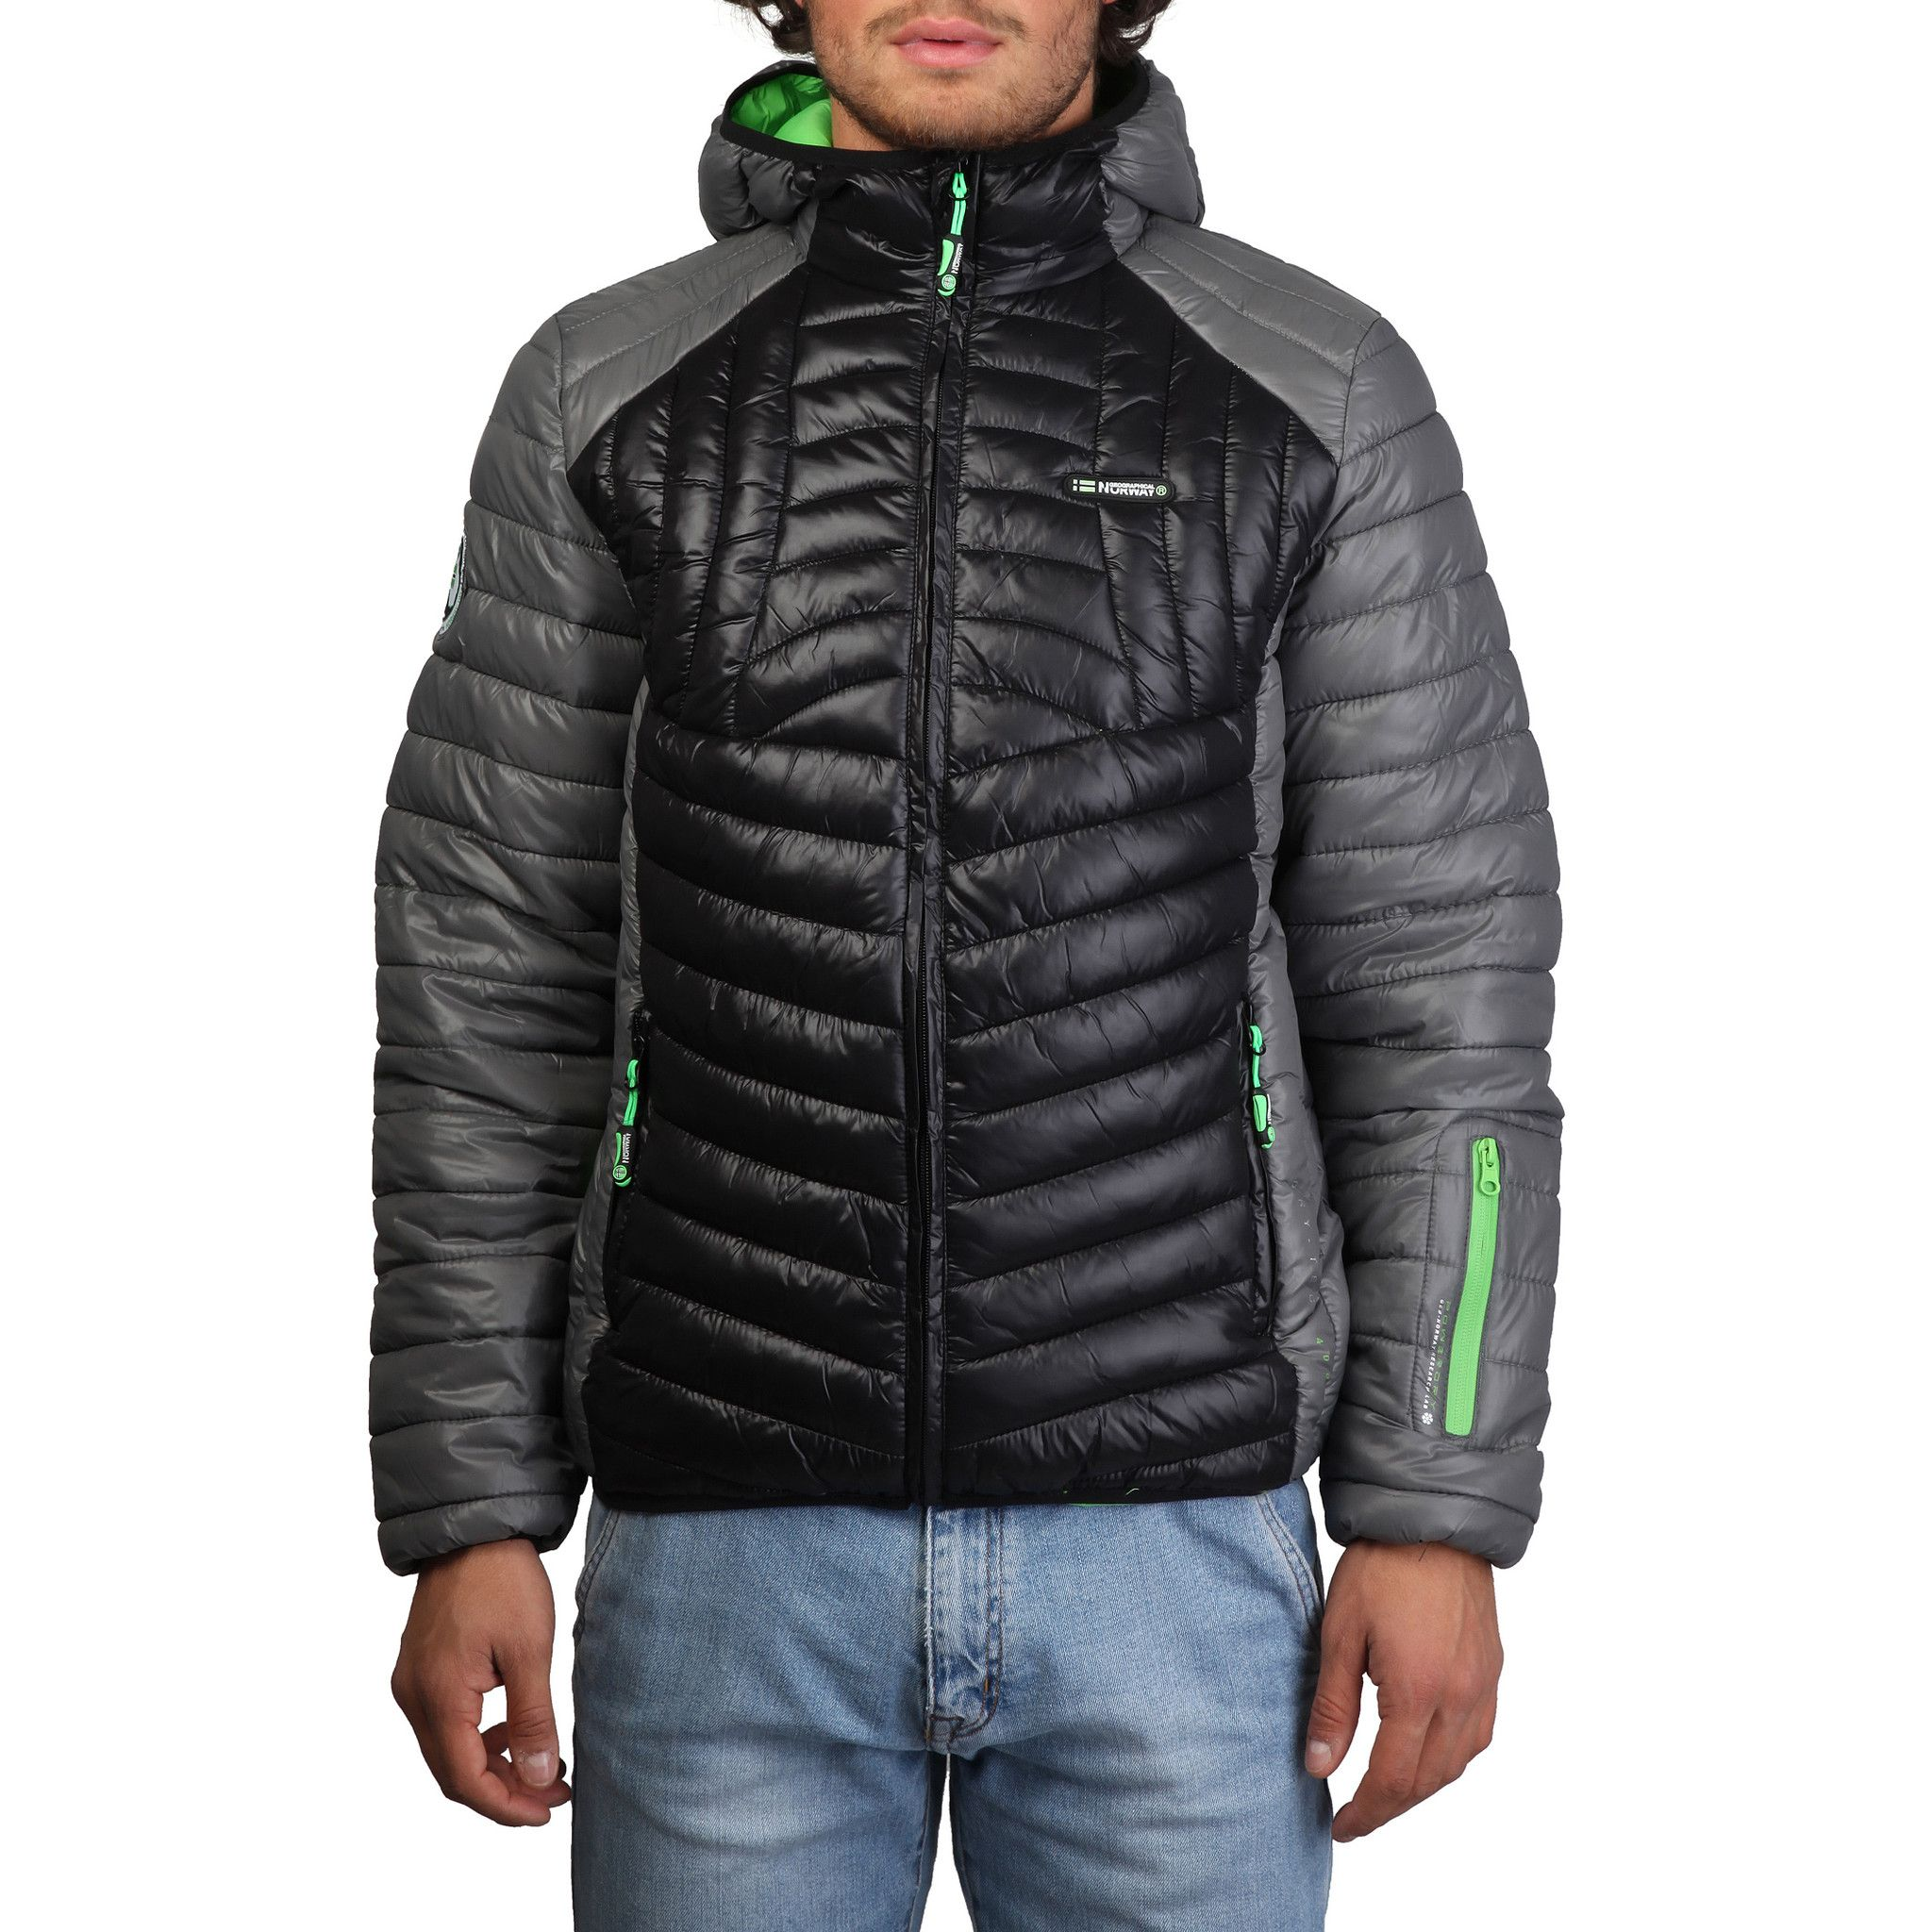 finest selection 09f42 2129c Geographical Norway Men Jackets | The Nora | HALIFAX ...